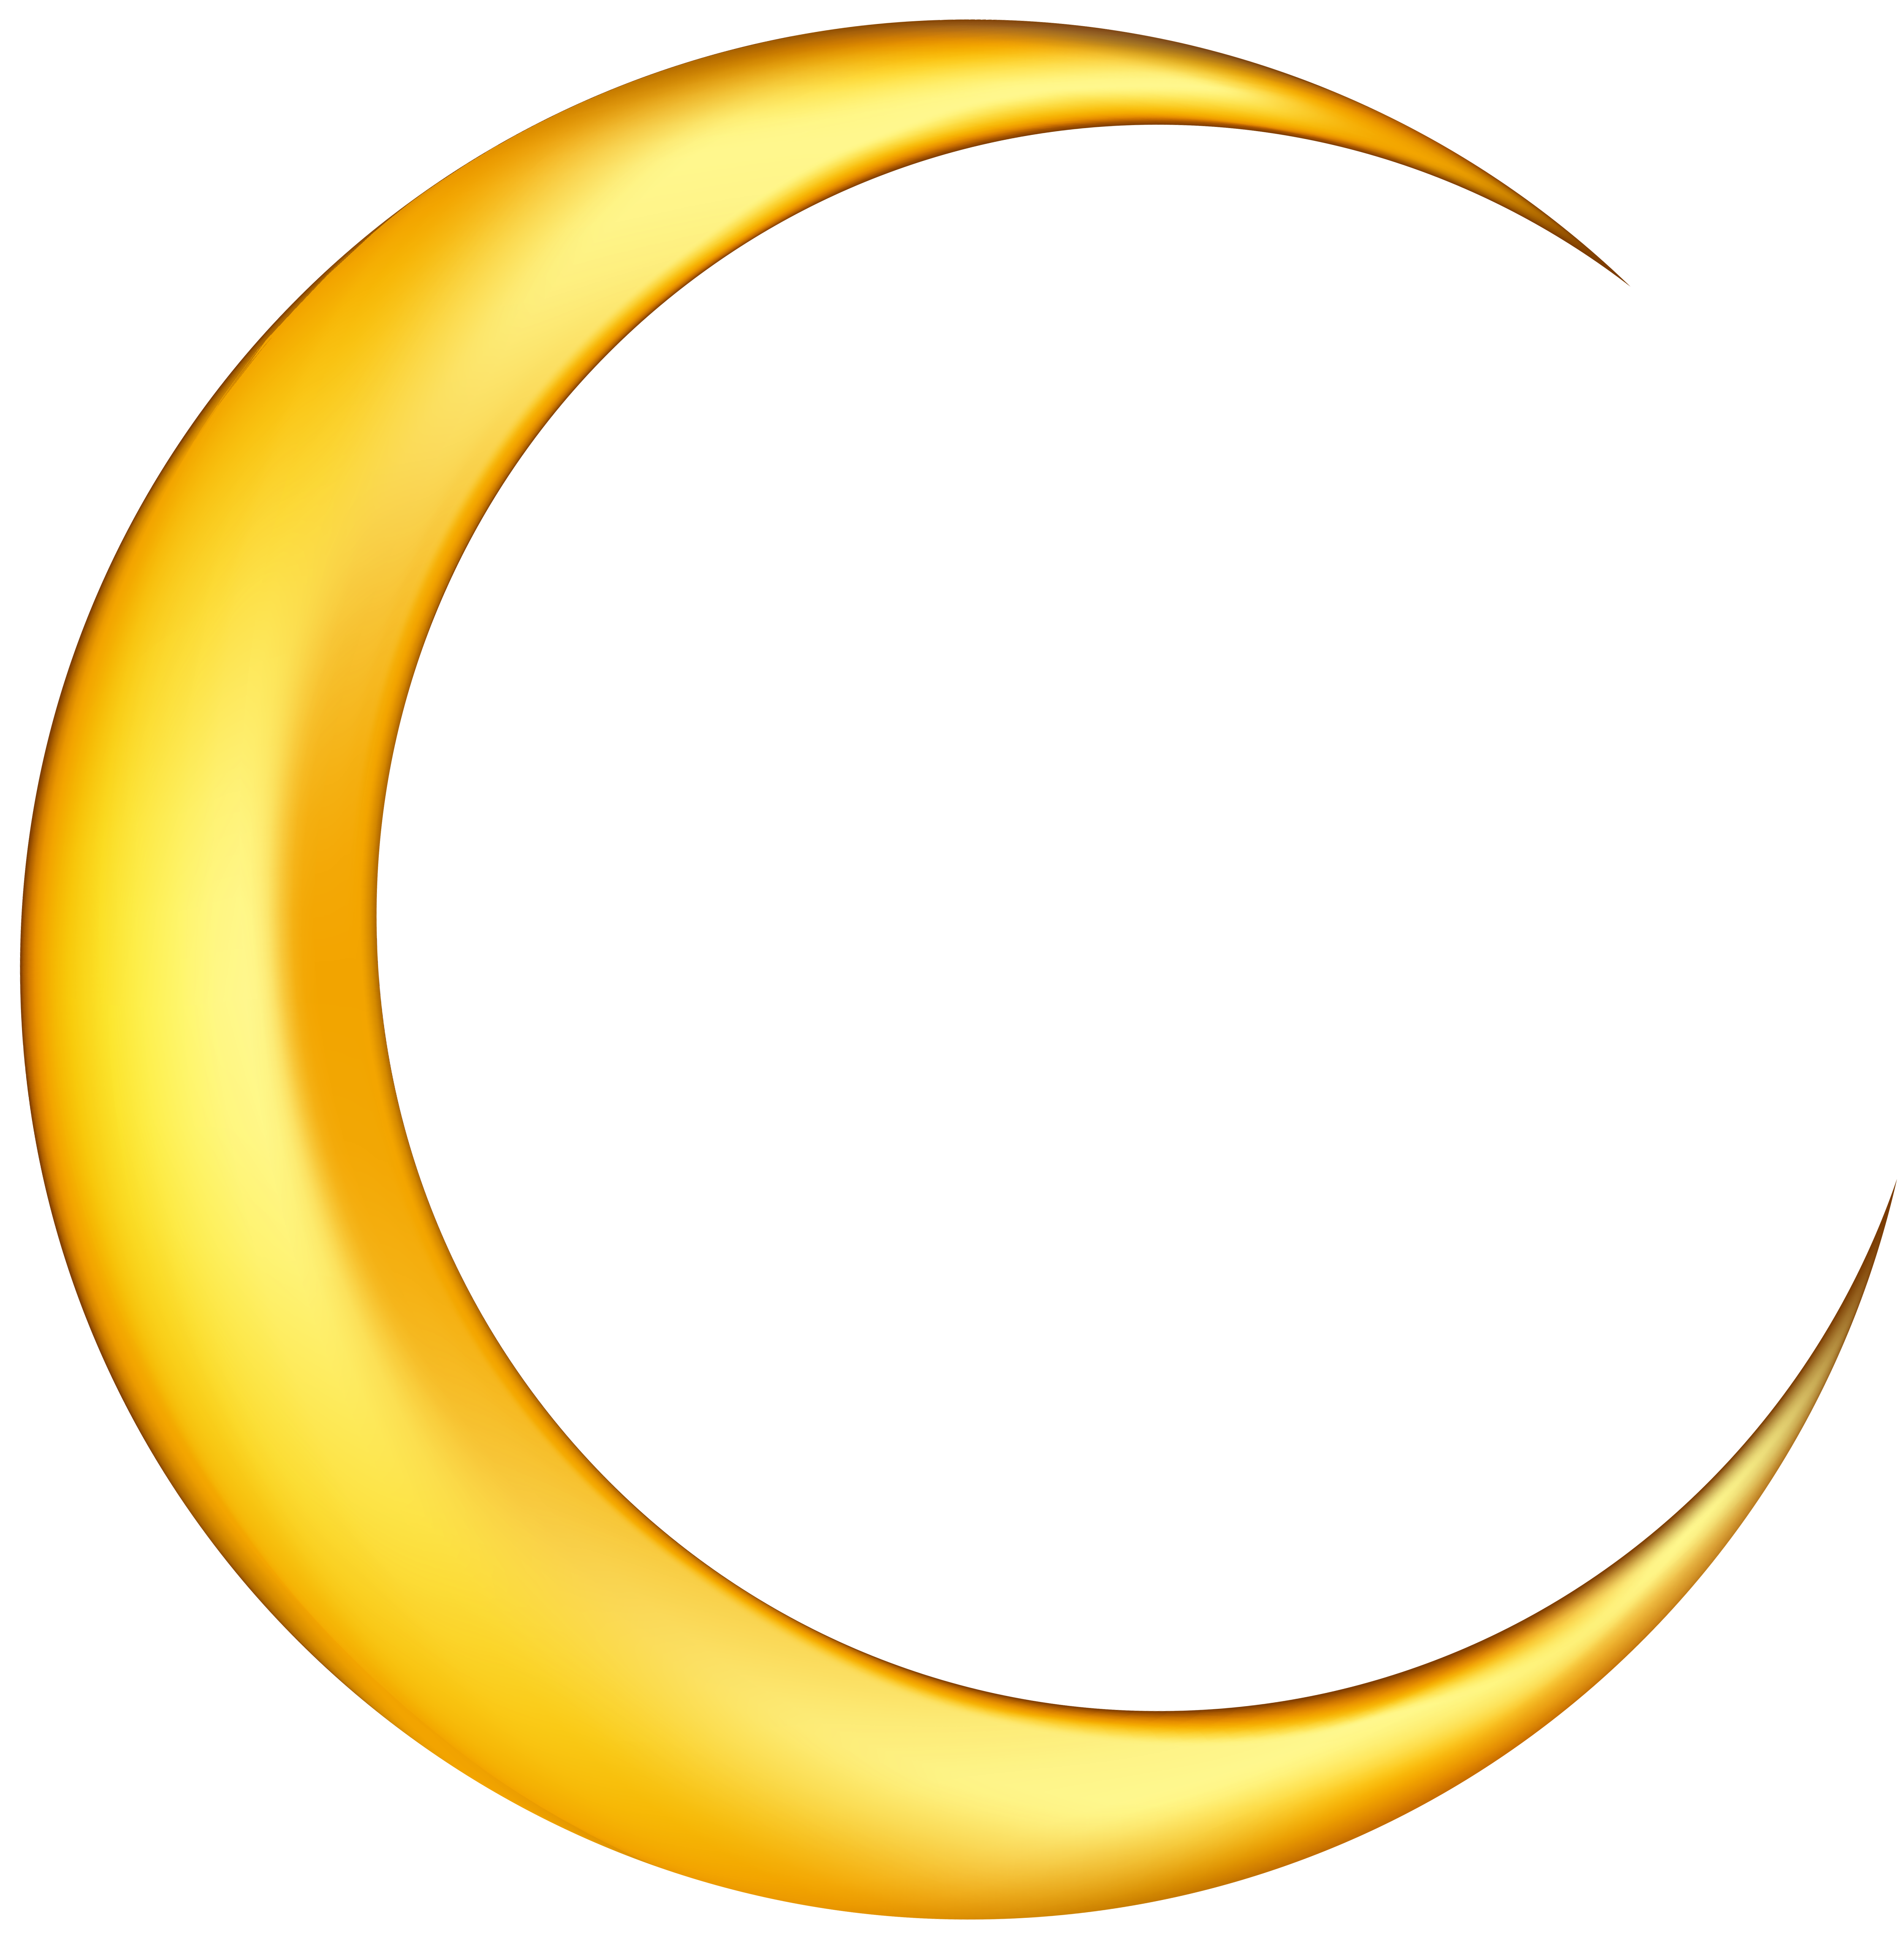 Yellow Crescent Moon Png & Free Yellow Crescent Moon.png ...